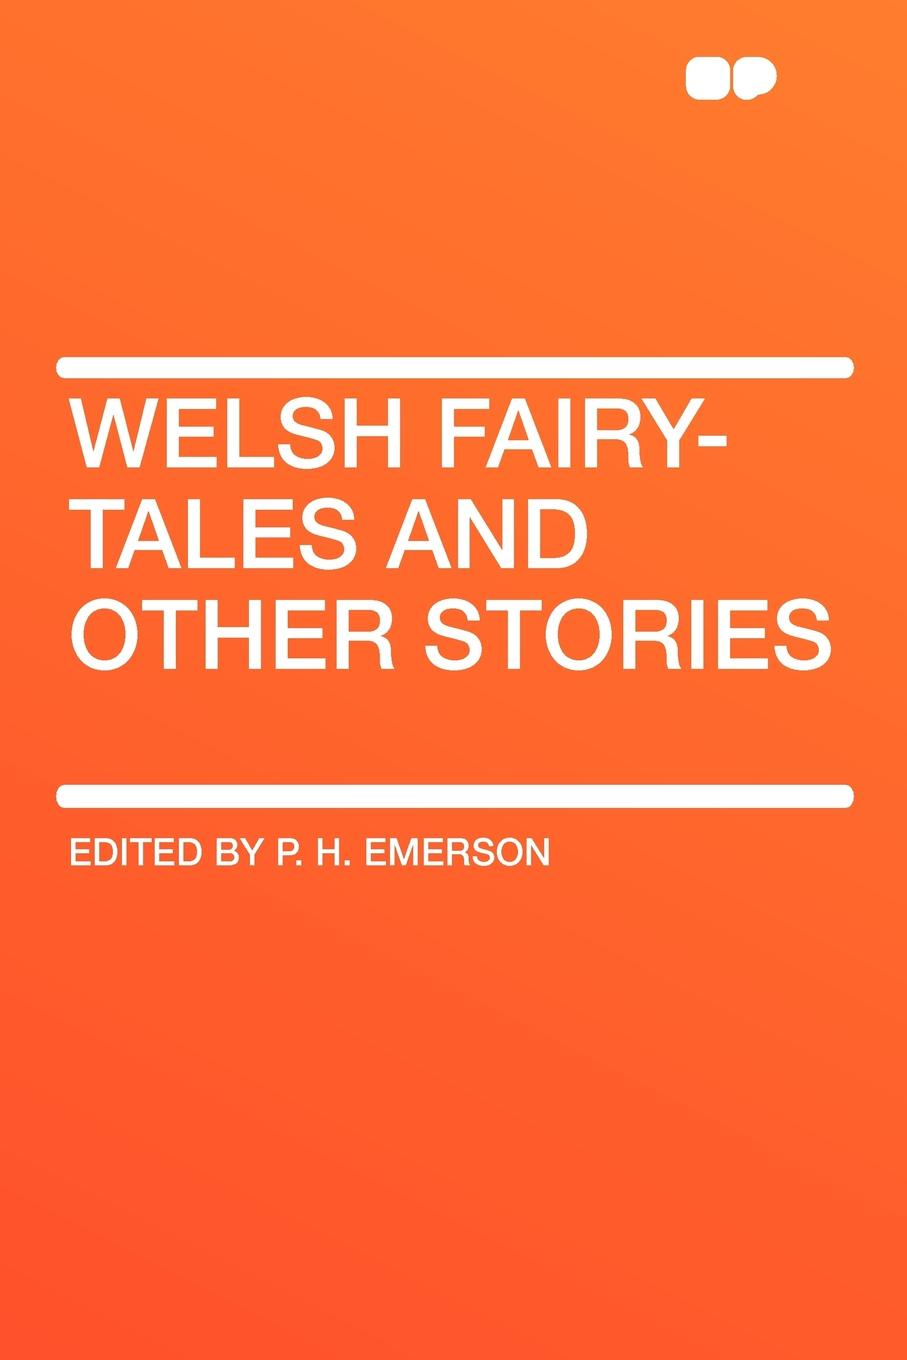 Welsh Fairy-Tales and Other Stories selected fairy tales